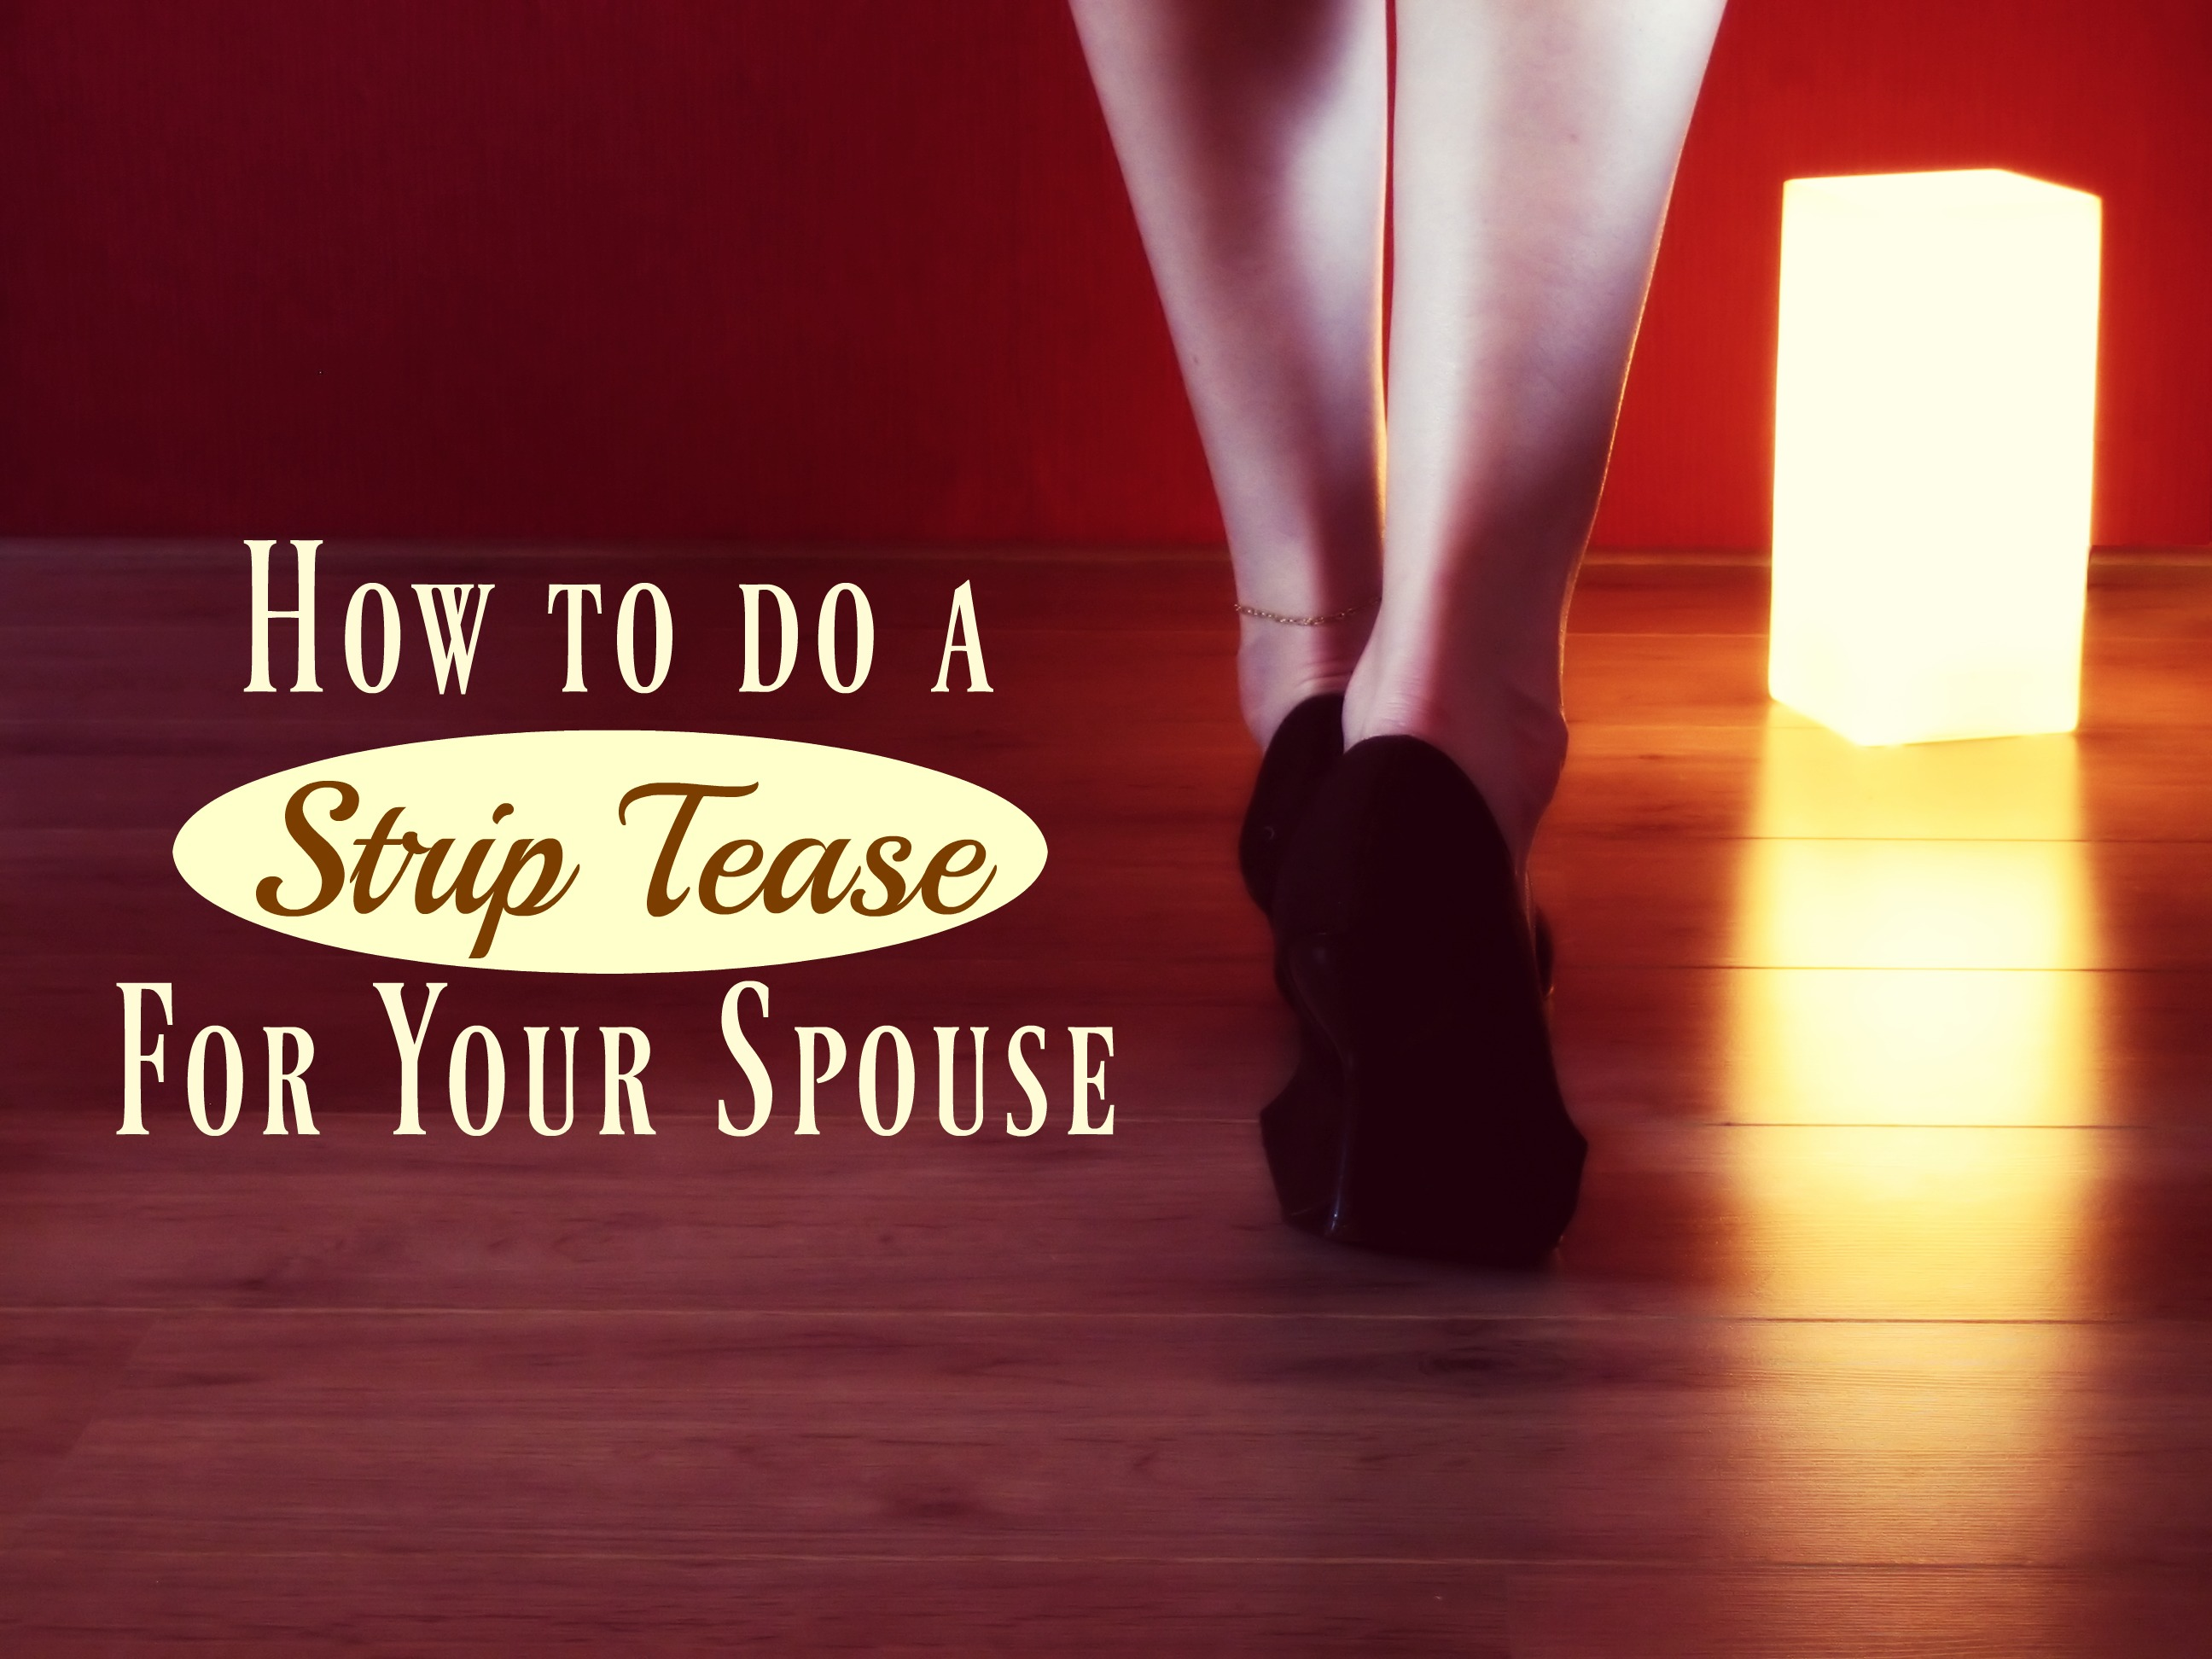 how-to-do-a-strip-tease-for-your-spouse